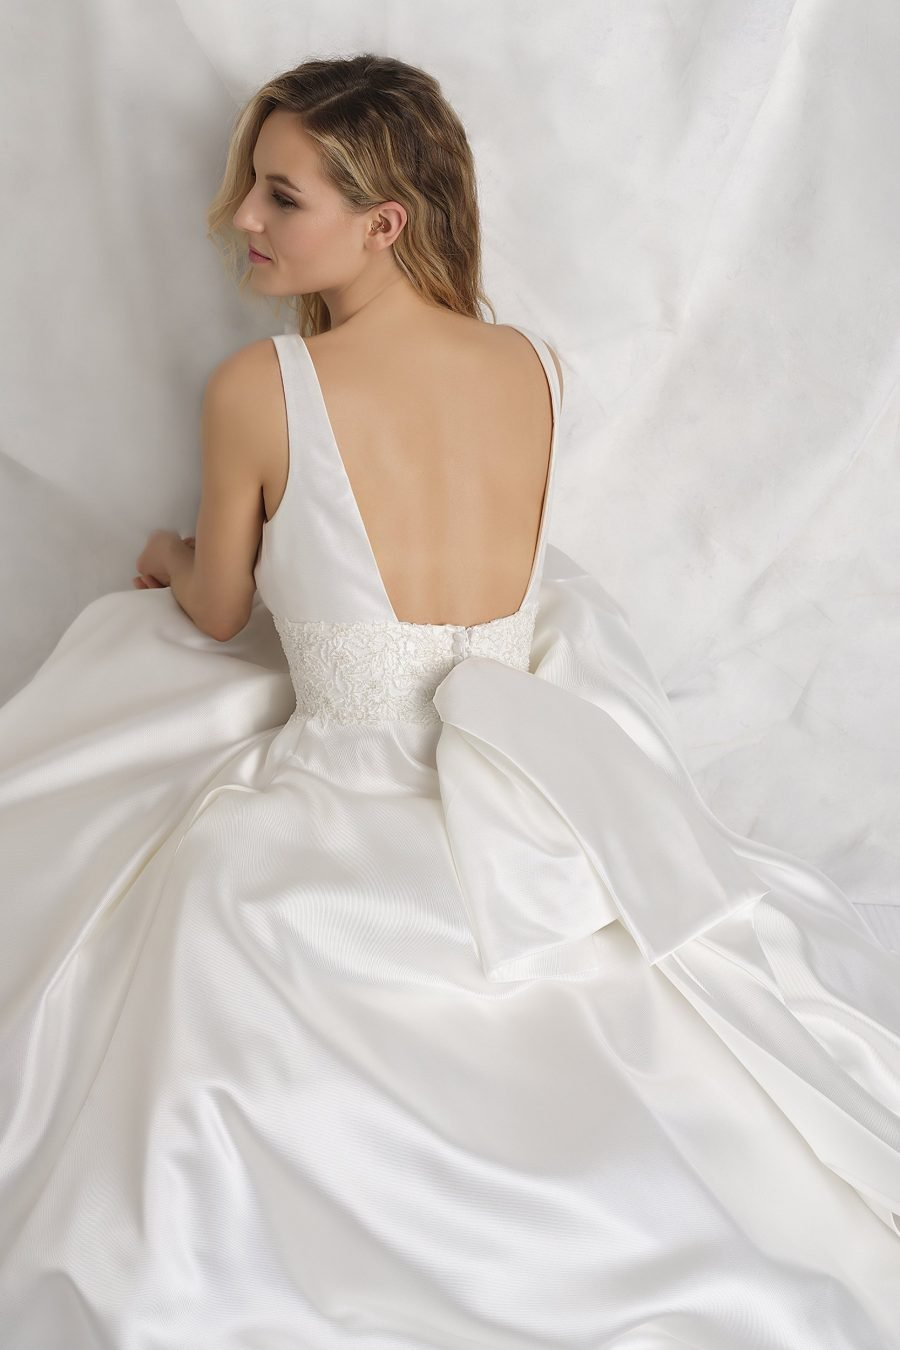 Michelle Roth Vikoria Gown